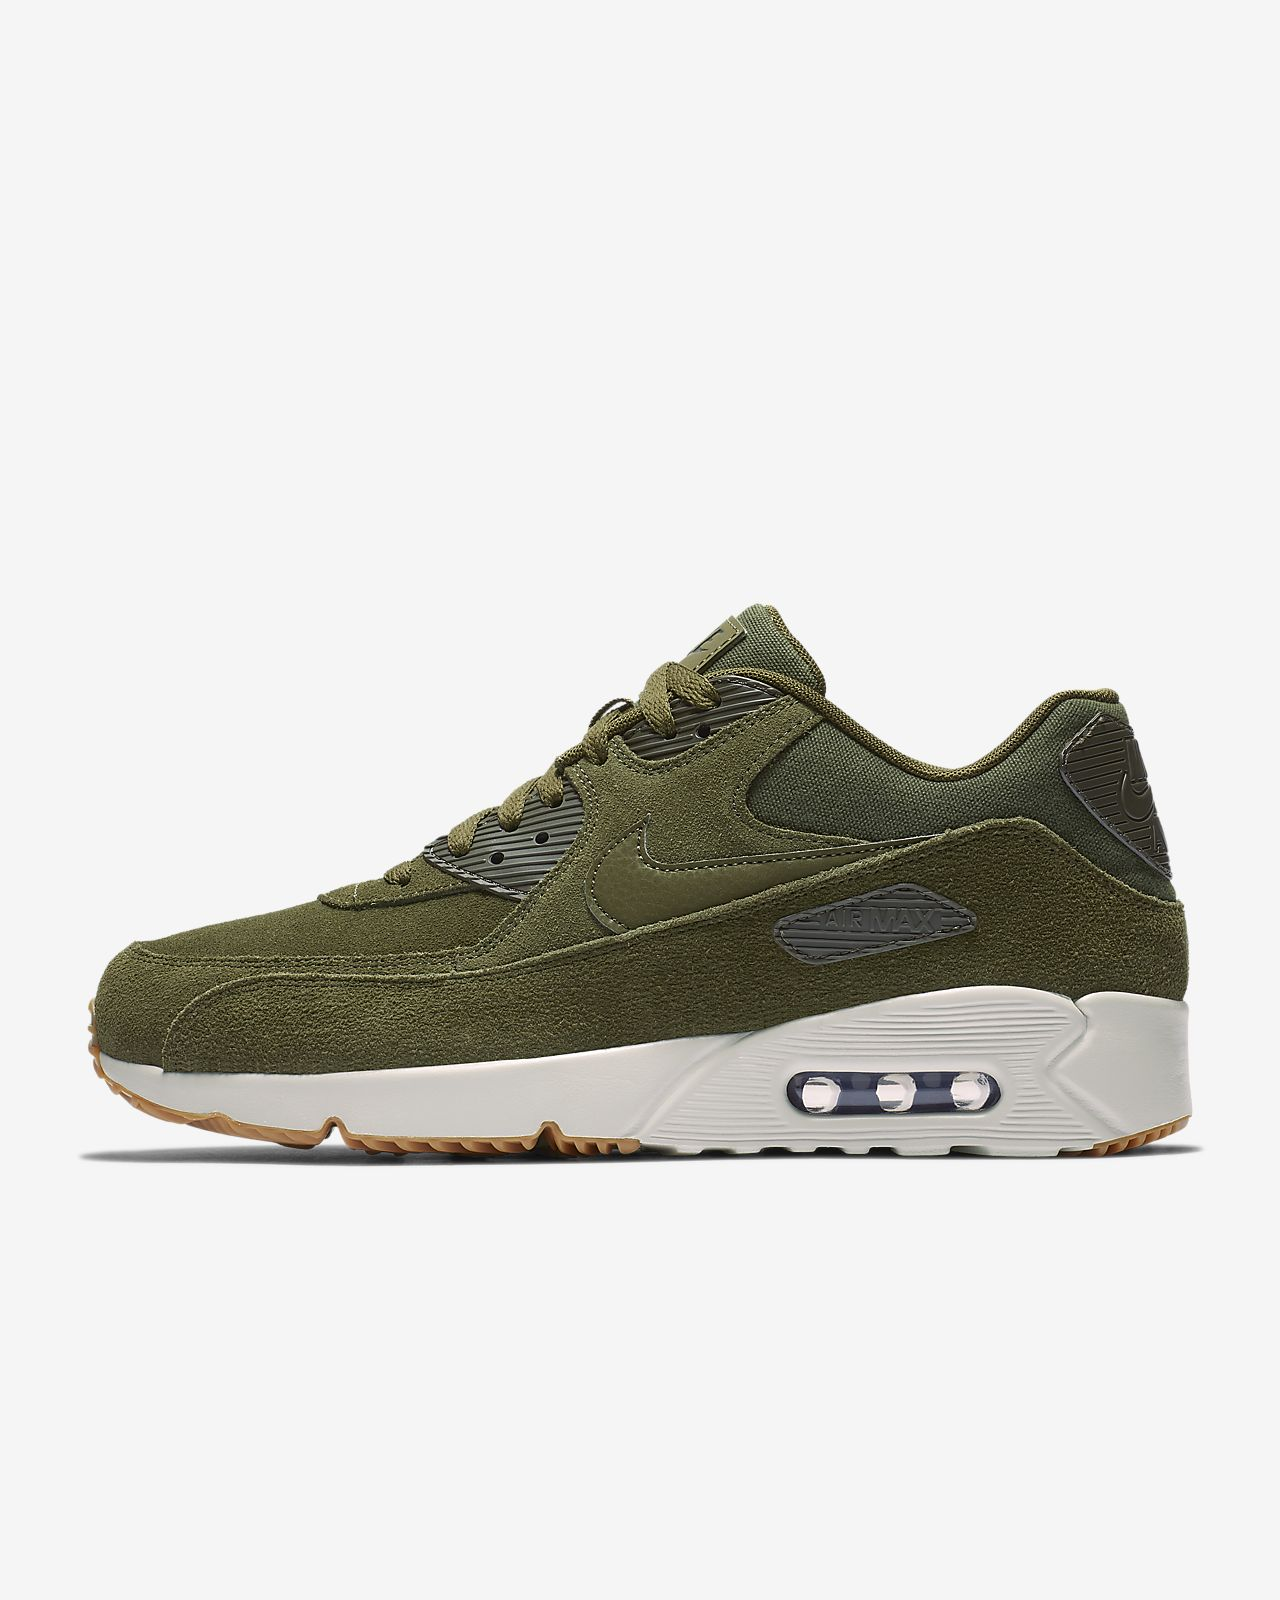 buy popular 920d8 efc39 Low Resolution Nike Air Max 90 Ultra 2.0 Men s Shoe Nike Air Max 90 Ultra  2.0 Men s Shoe